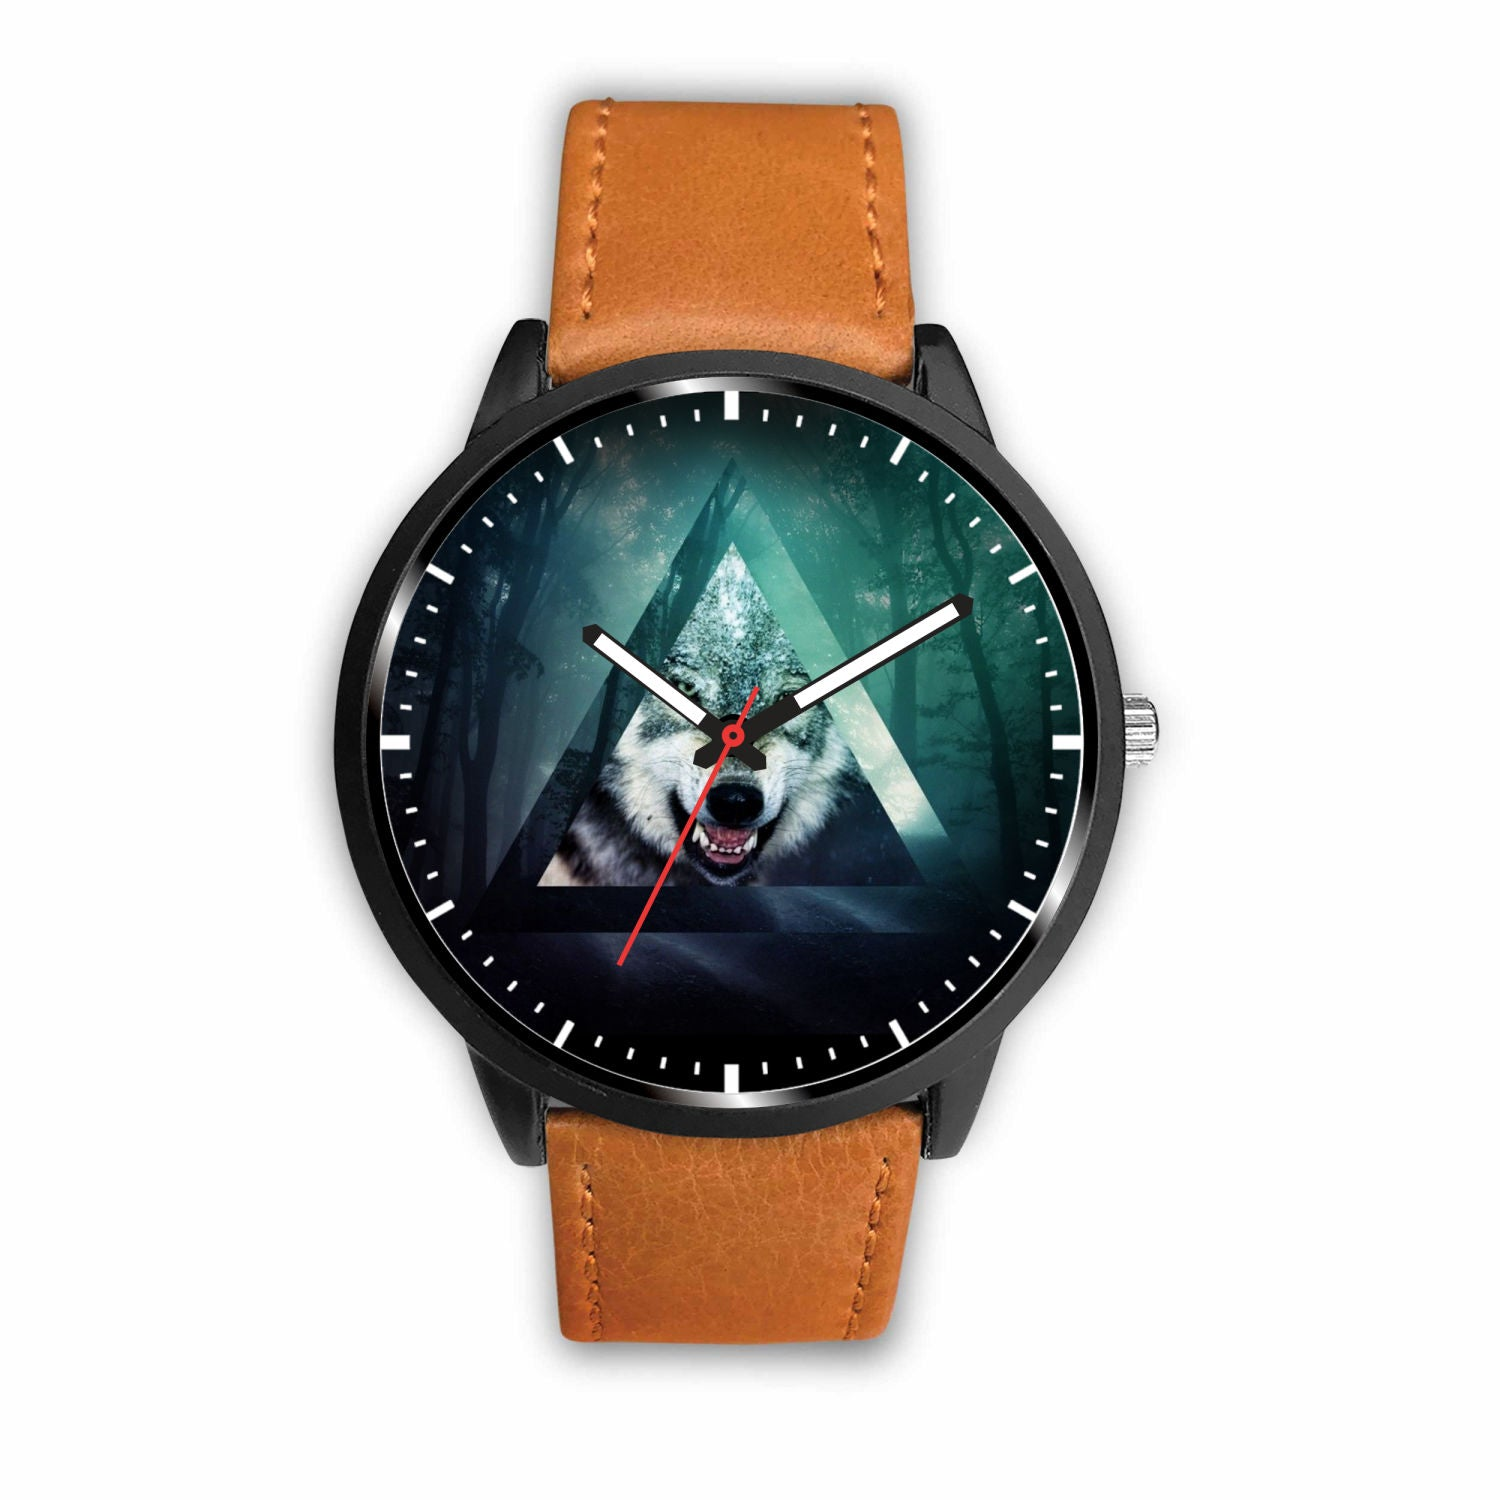 3D Wolf Watch - Stainless steel back with leather/ stainless steel band 002 - designfullprint